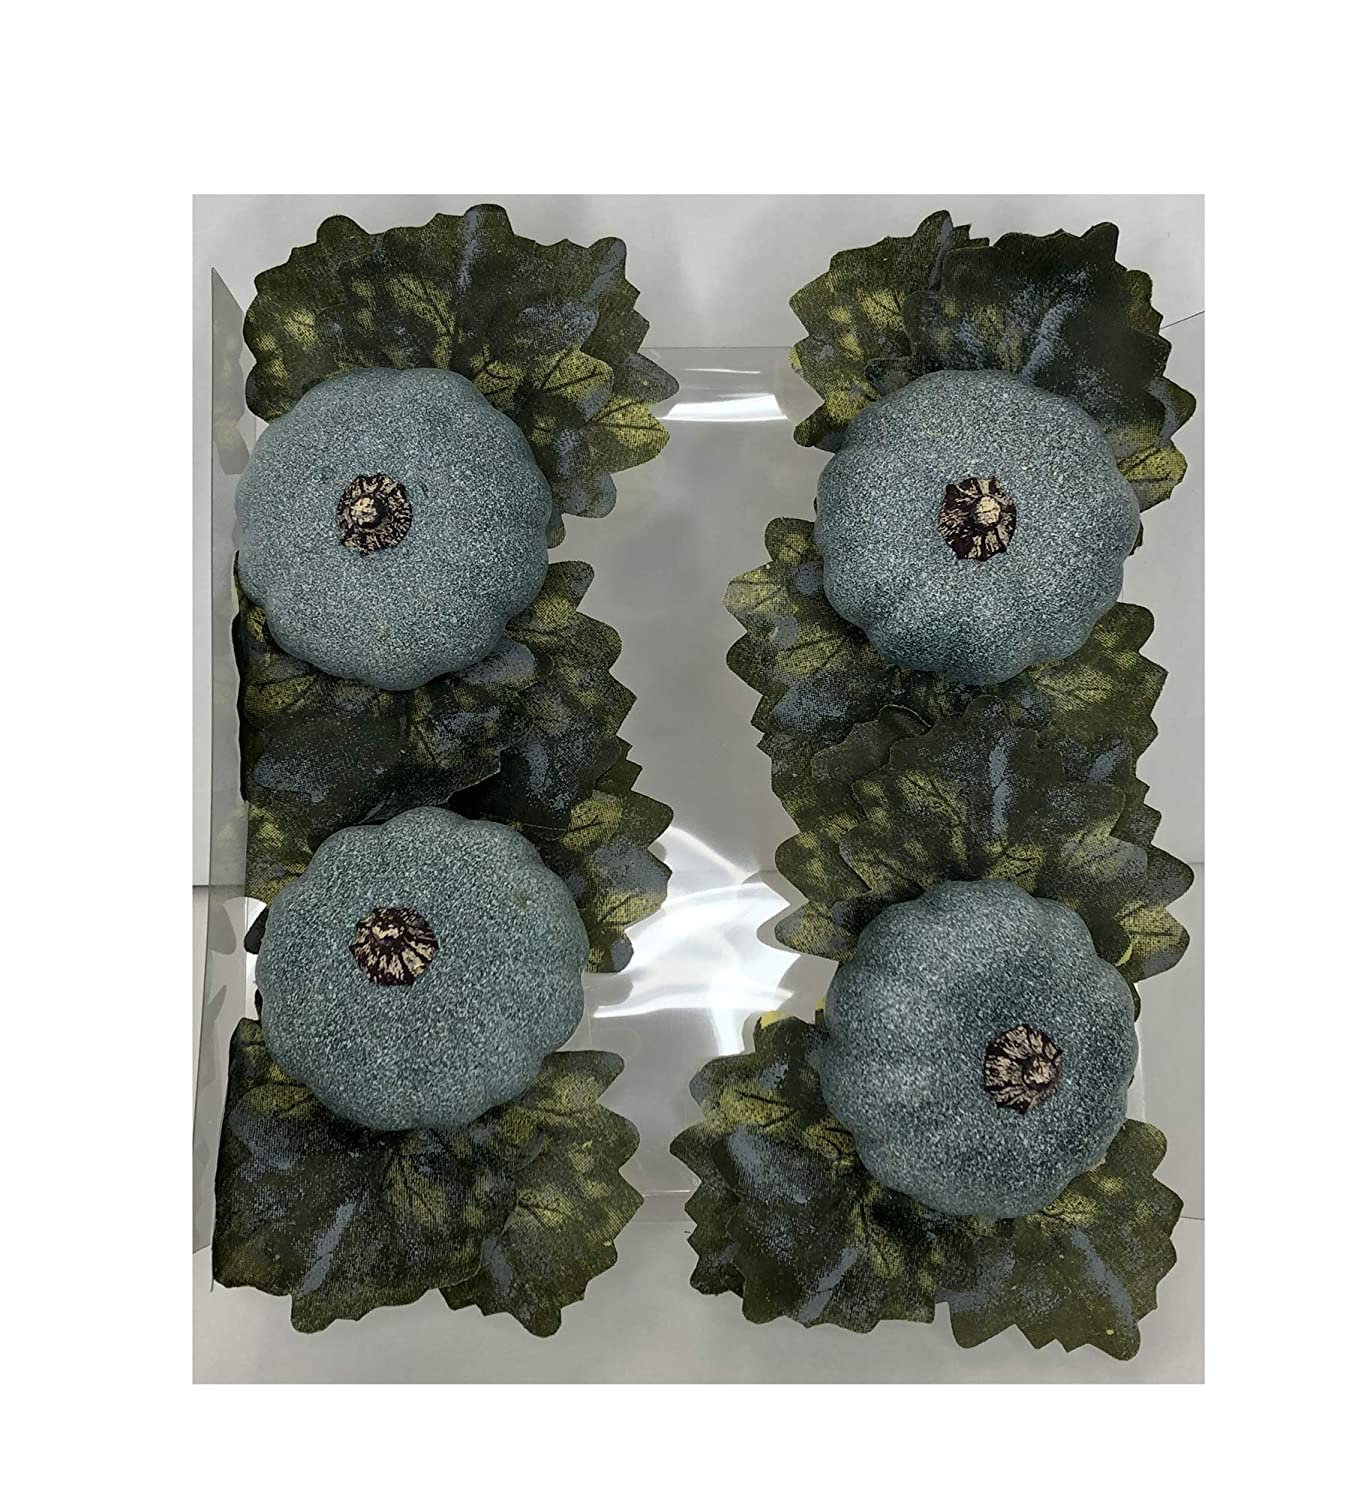 Nantucket Home Thanksgiving Napkin Rings Set of 4 Trendy Glitter Teal Pumpkin and Leaves Harvest Bouquet Fall DecorDinner Party Table Arrangement